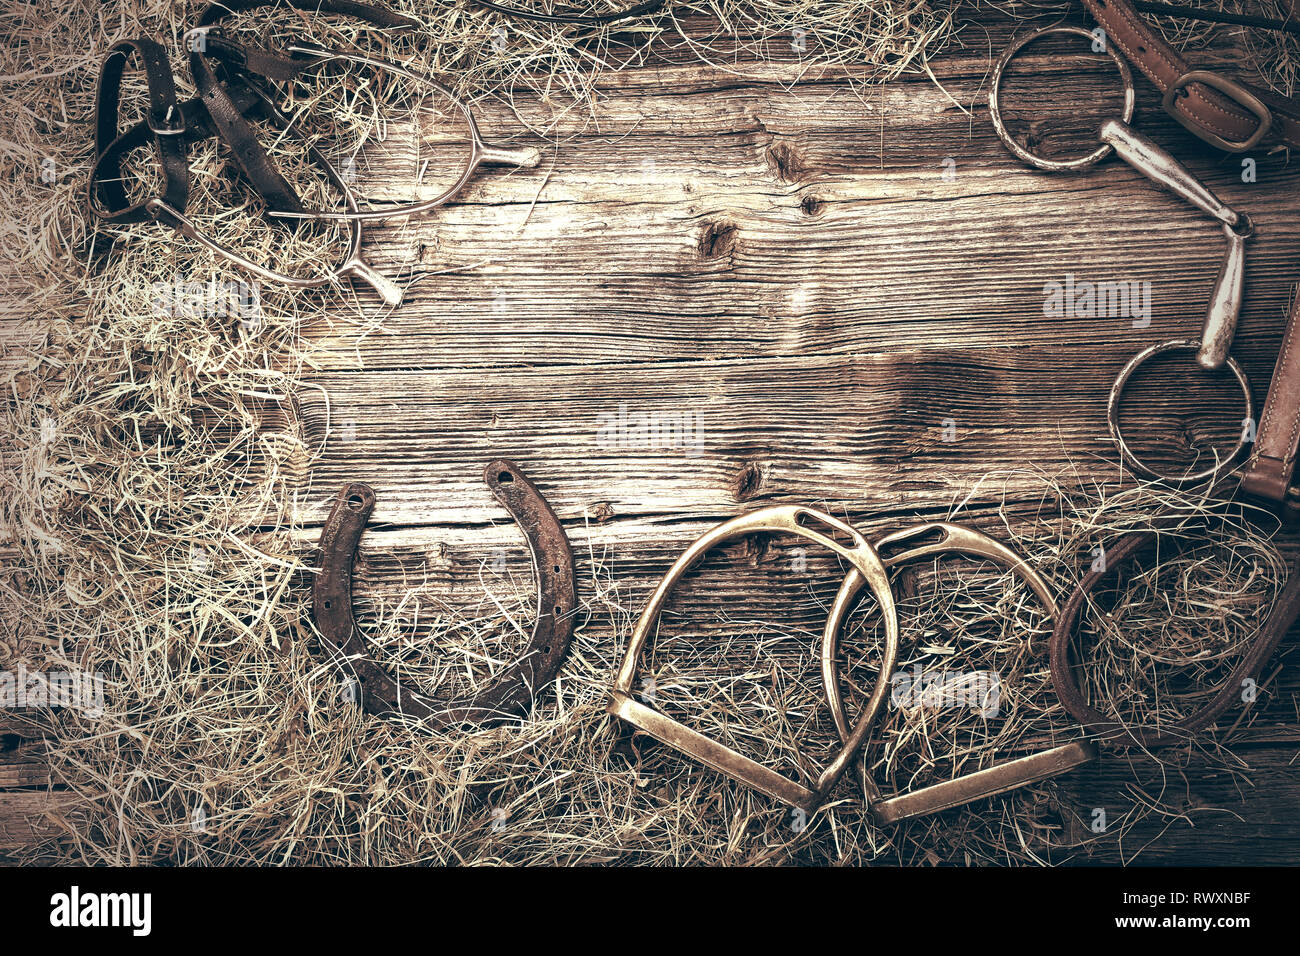 Horse equipments on wooden background with empty space for text, close up vintage view - Stock Image